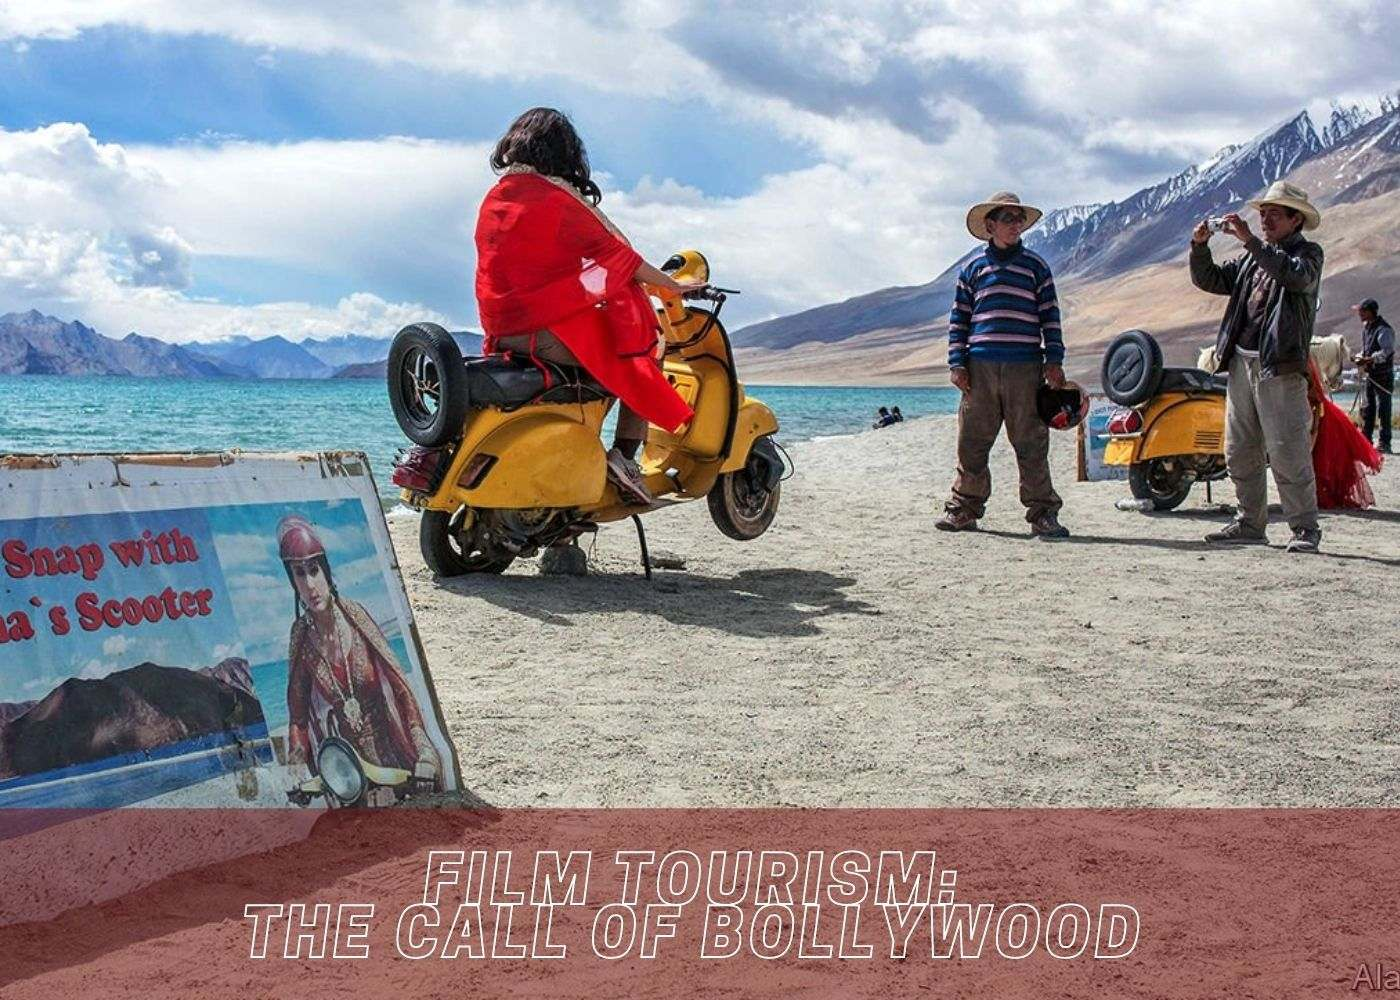 Film Tourism: The Call of Bollywood